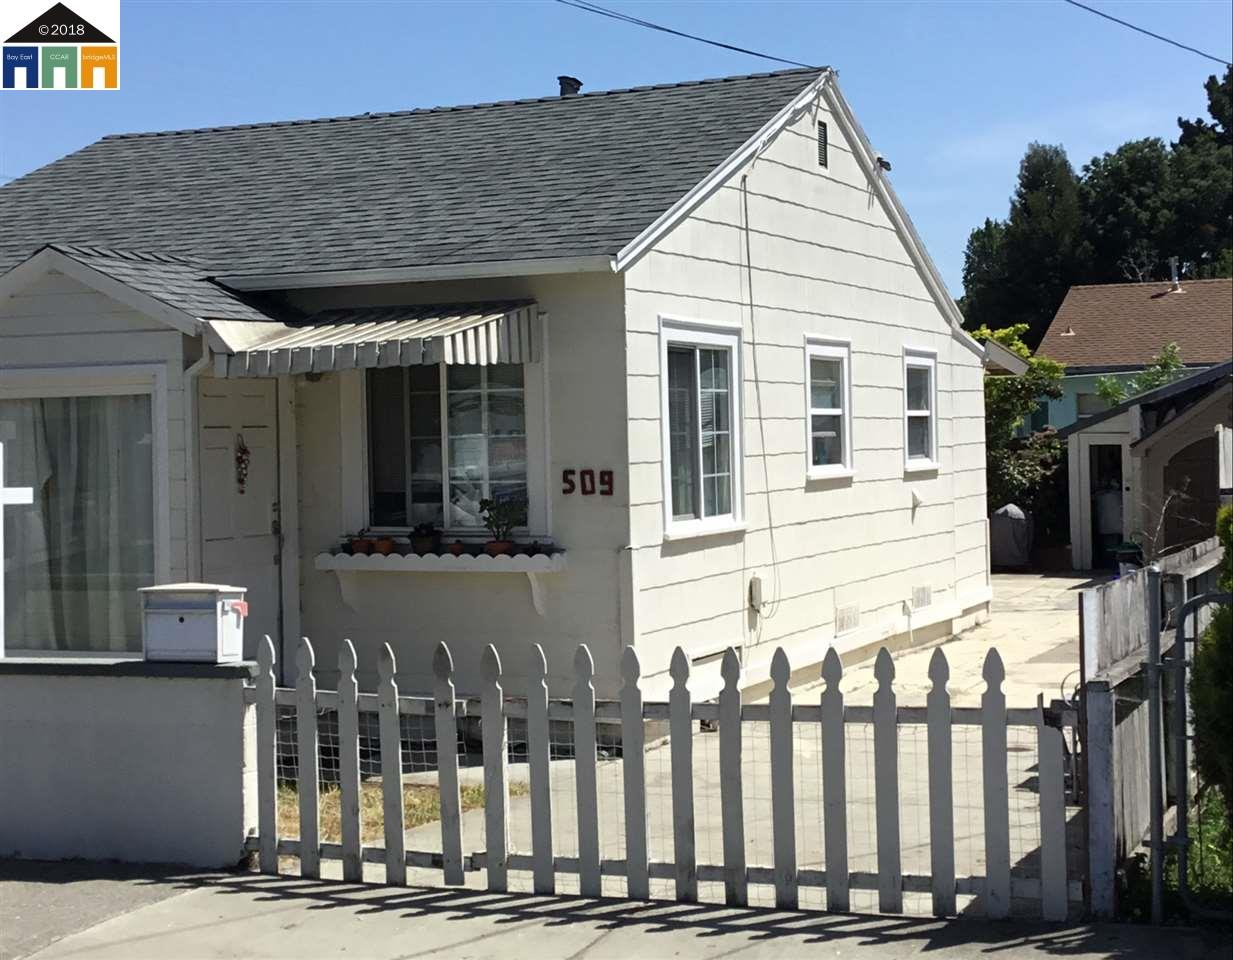 509 6TH ST, RODEO, CA 94572